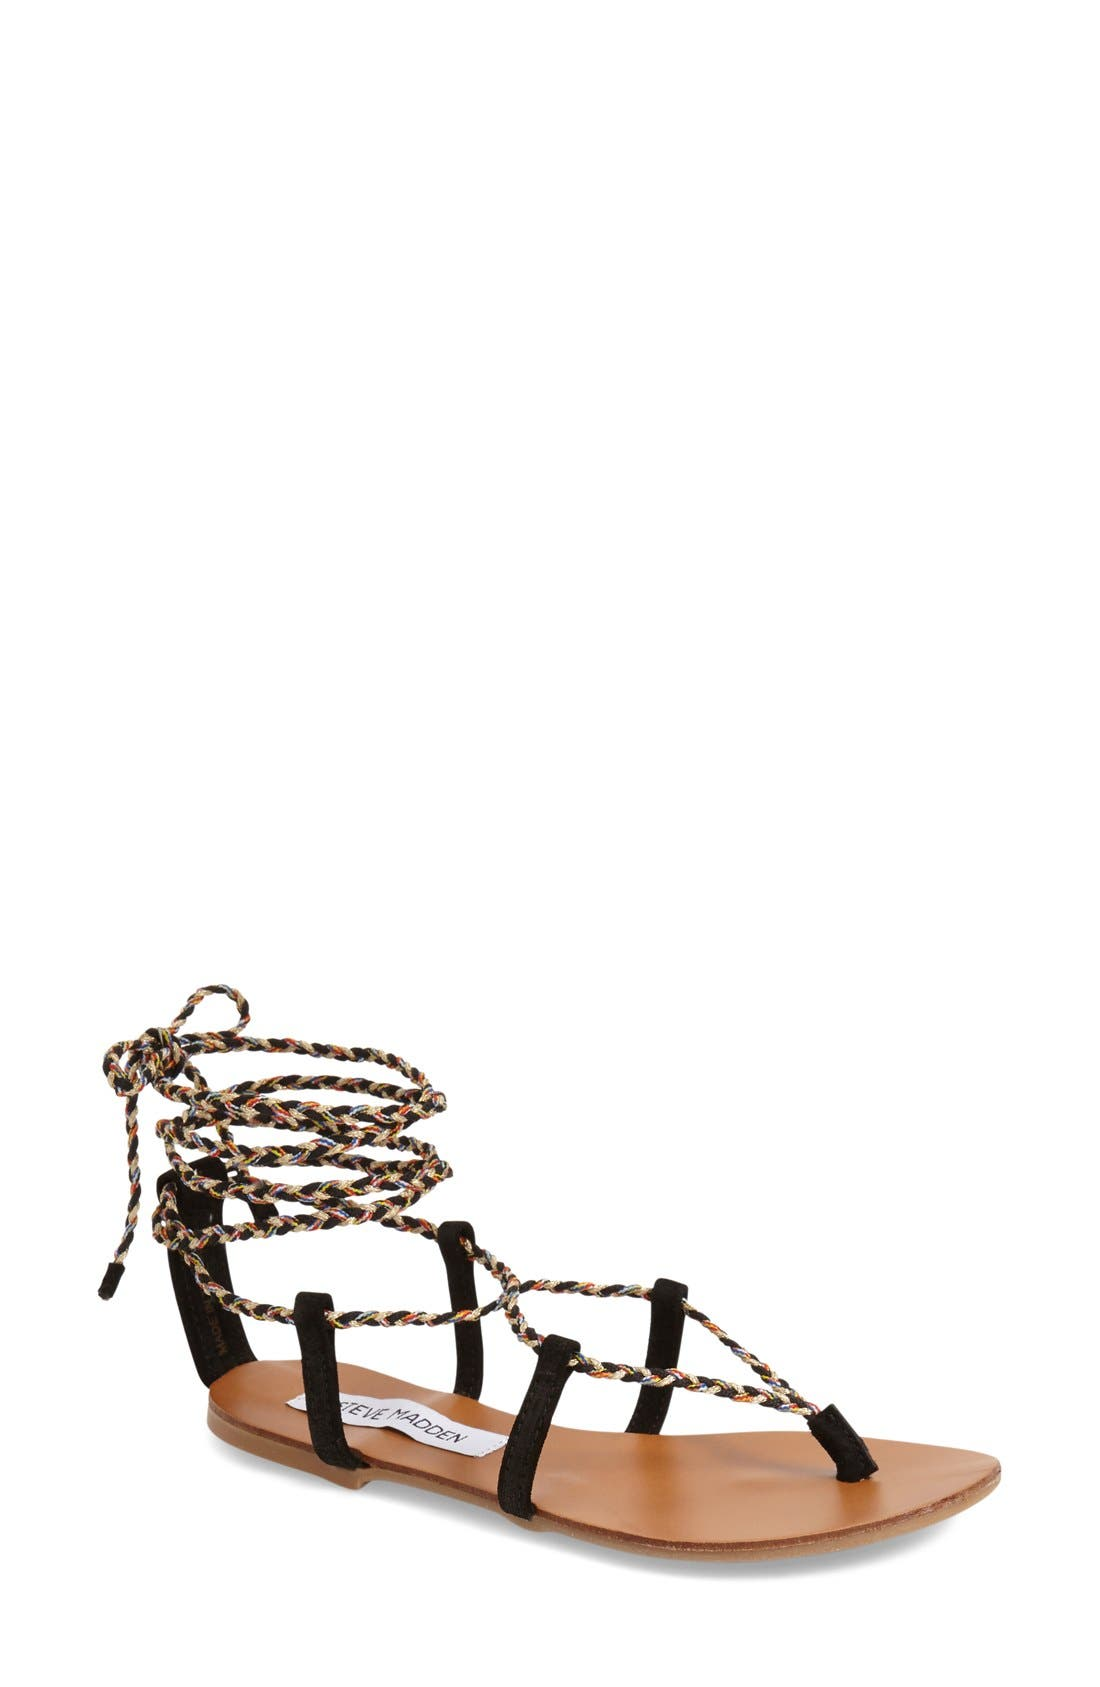 Alternate Image 1 Selected - Steve Madden 'Werkit' Gladiator Sandal (Women)